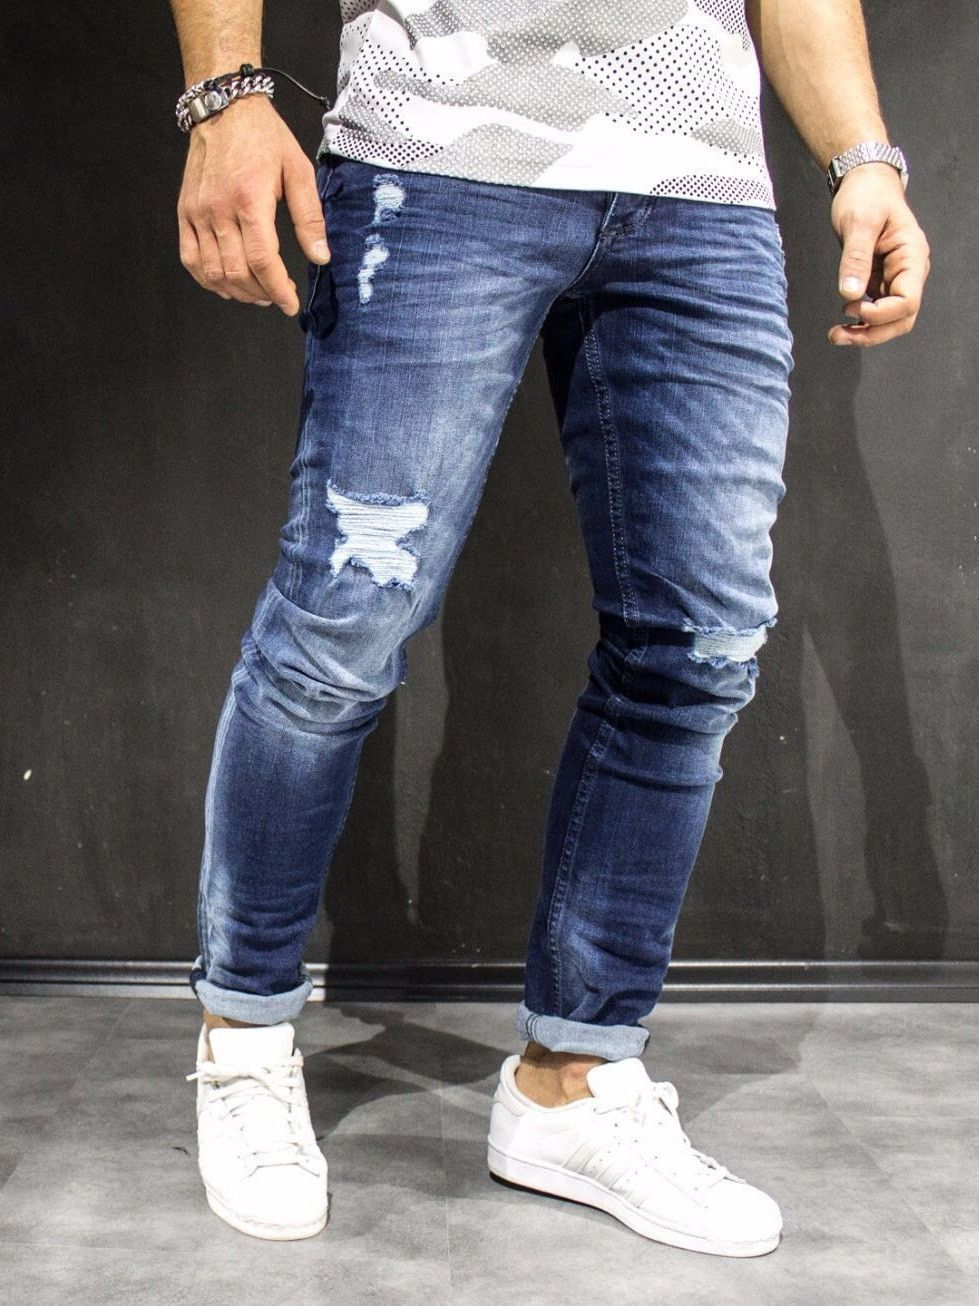 Men Slim Fit Simply Ripped Jeans - Blue | Denim jeans, Ripped and ...